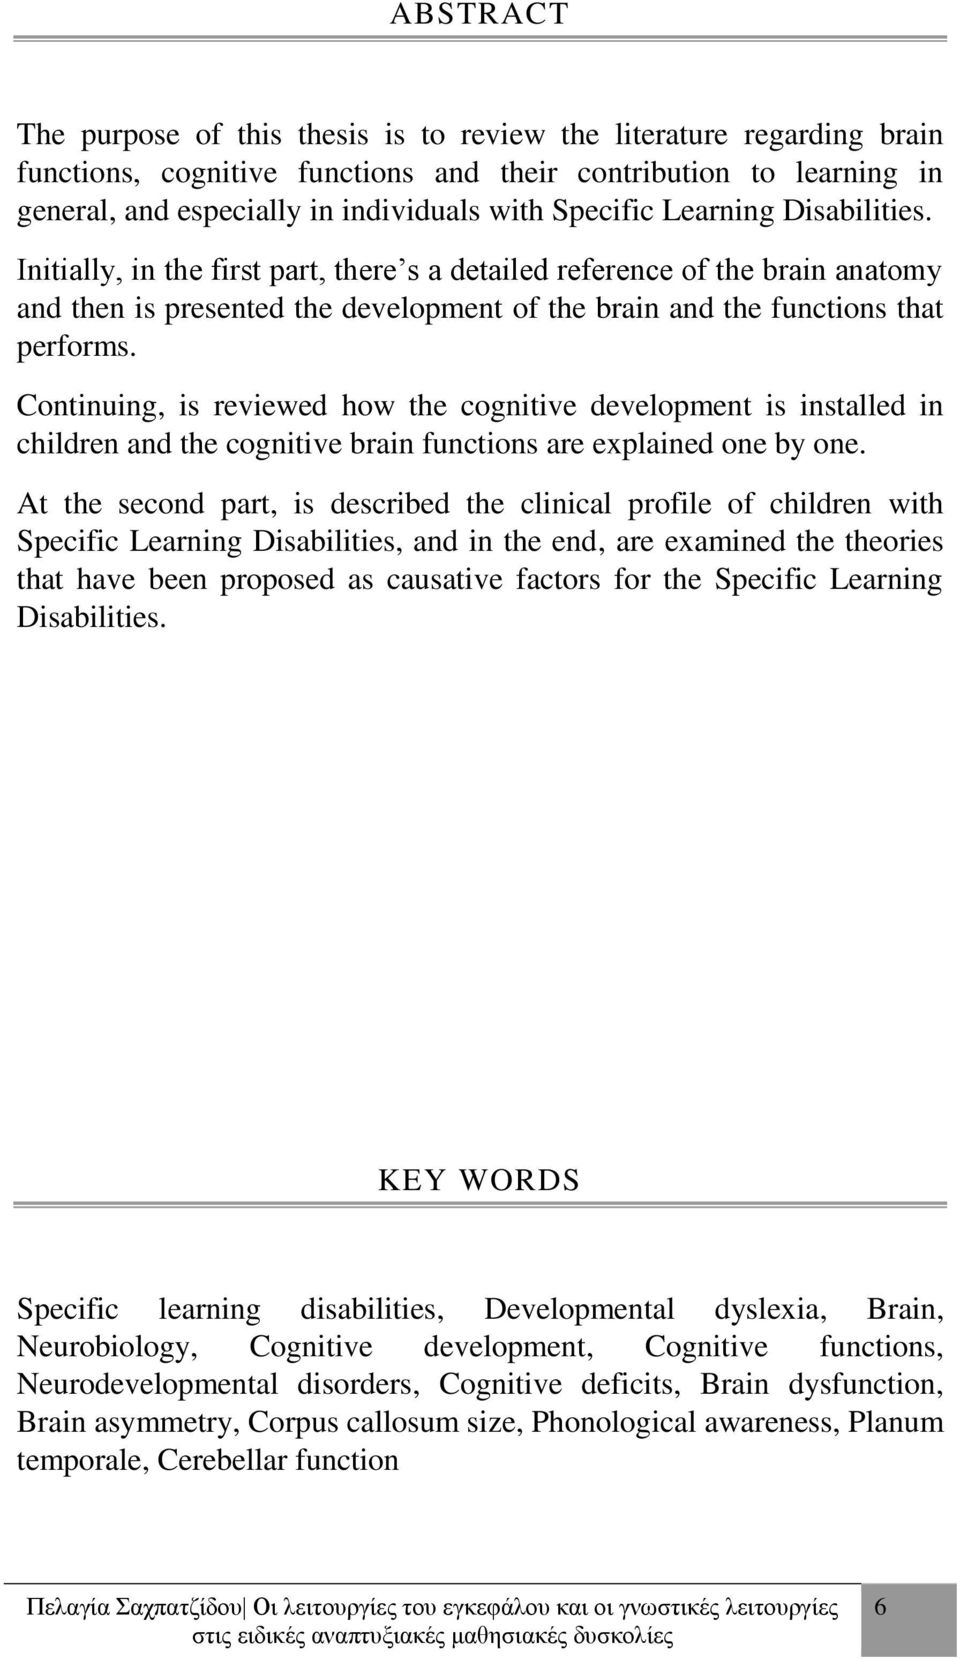 Continuing, is reviewed how the cognitive development is installed in children and the cognitive brain functions are explained one by one.